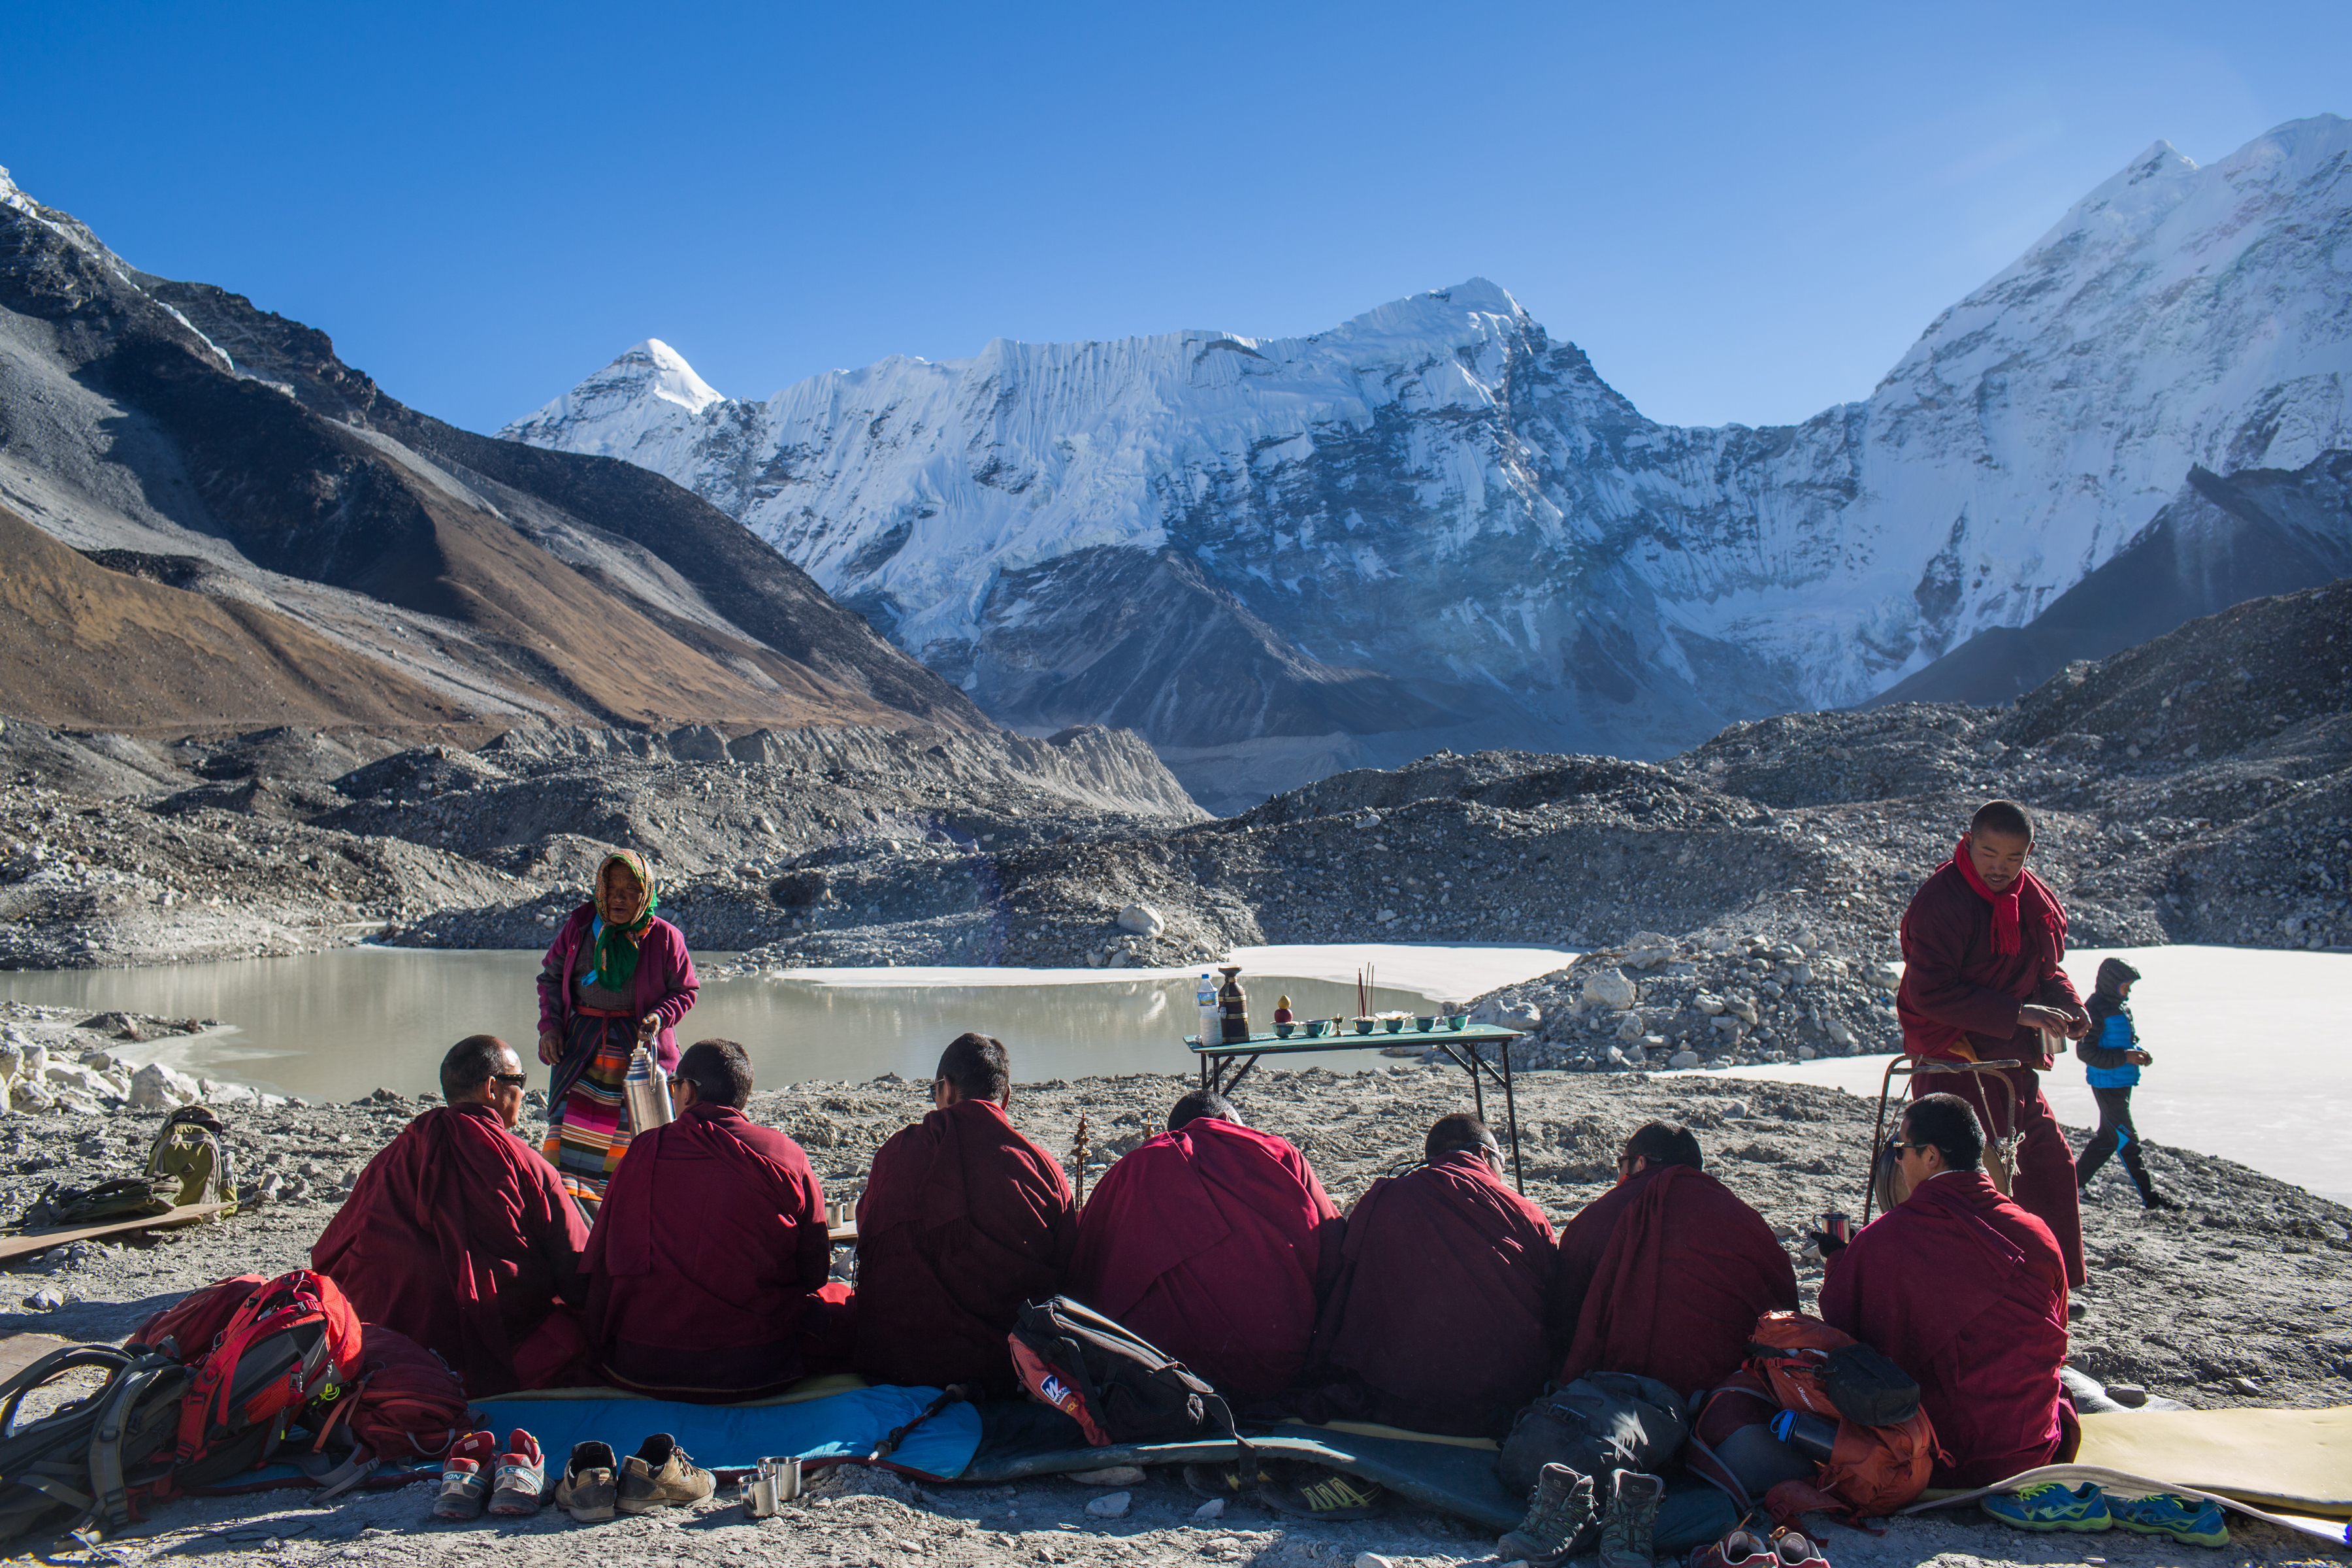 Buddhist monks perform a ceremony after a successful project to lower the level of the Imja Glacier Lake